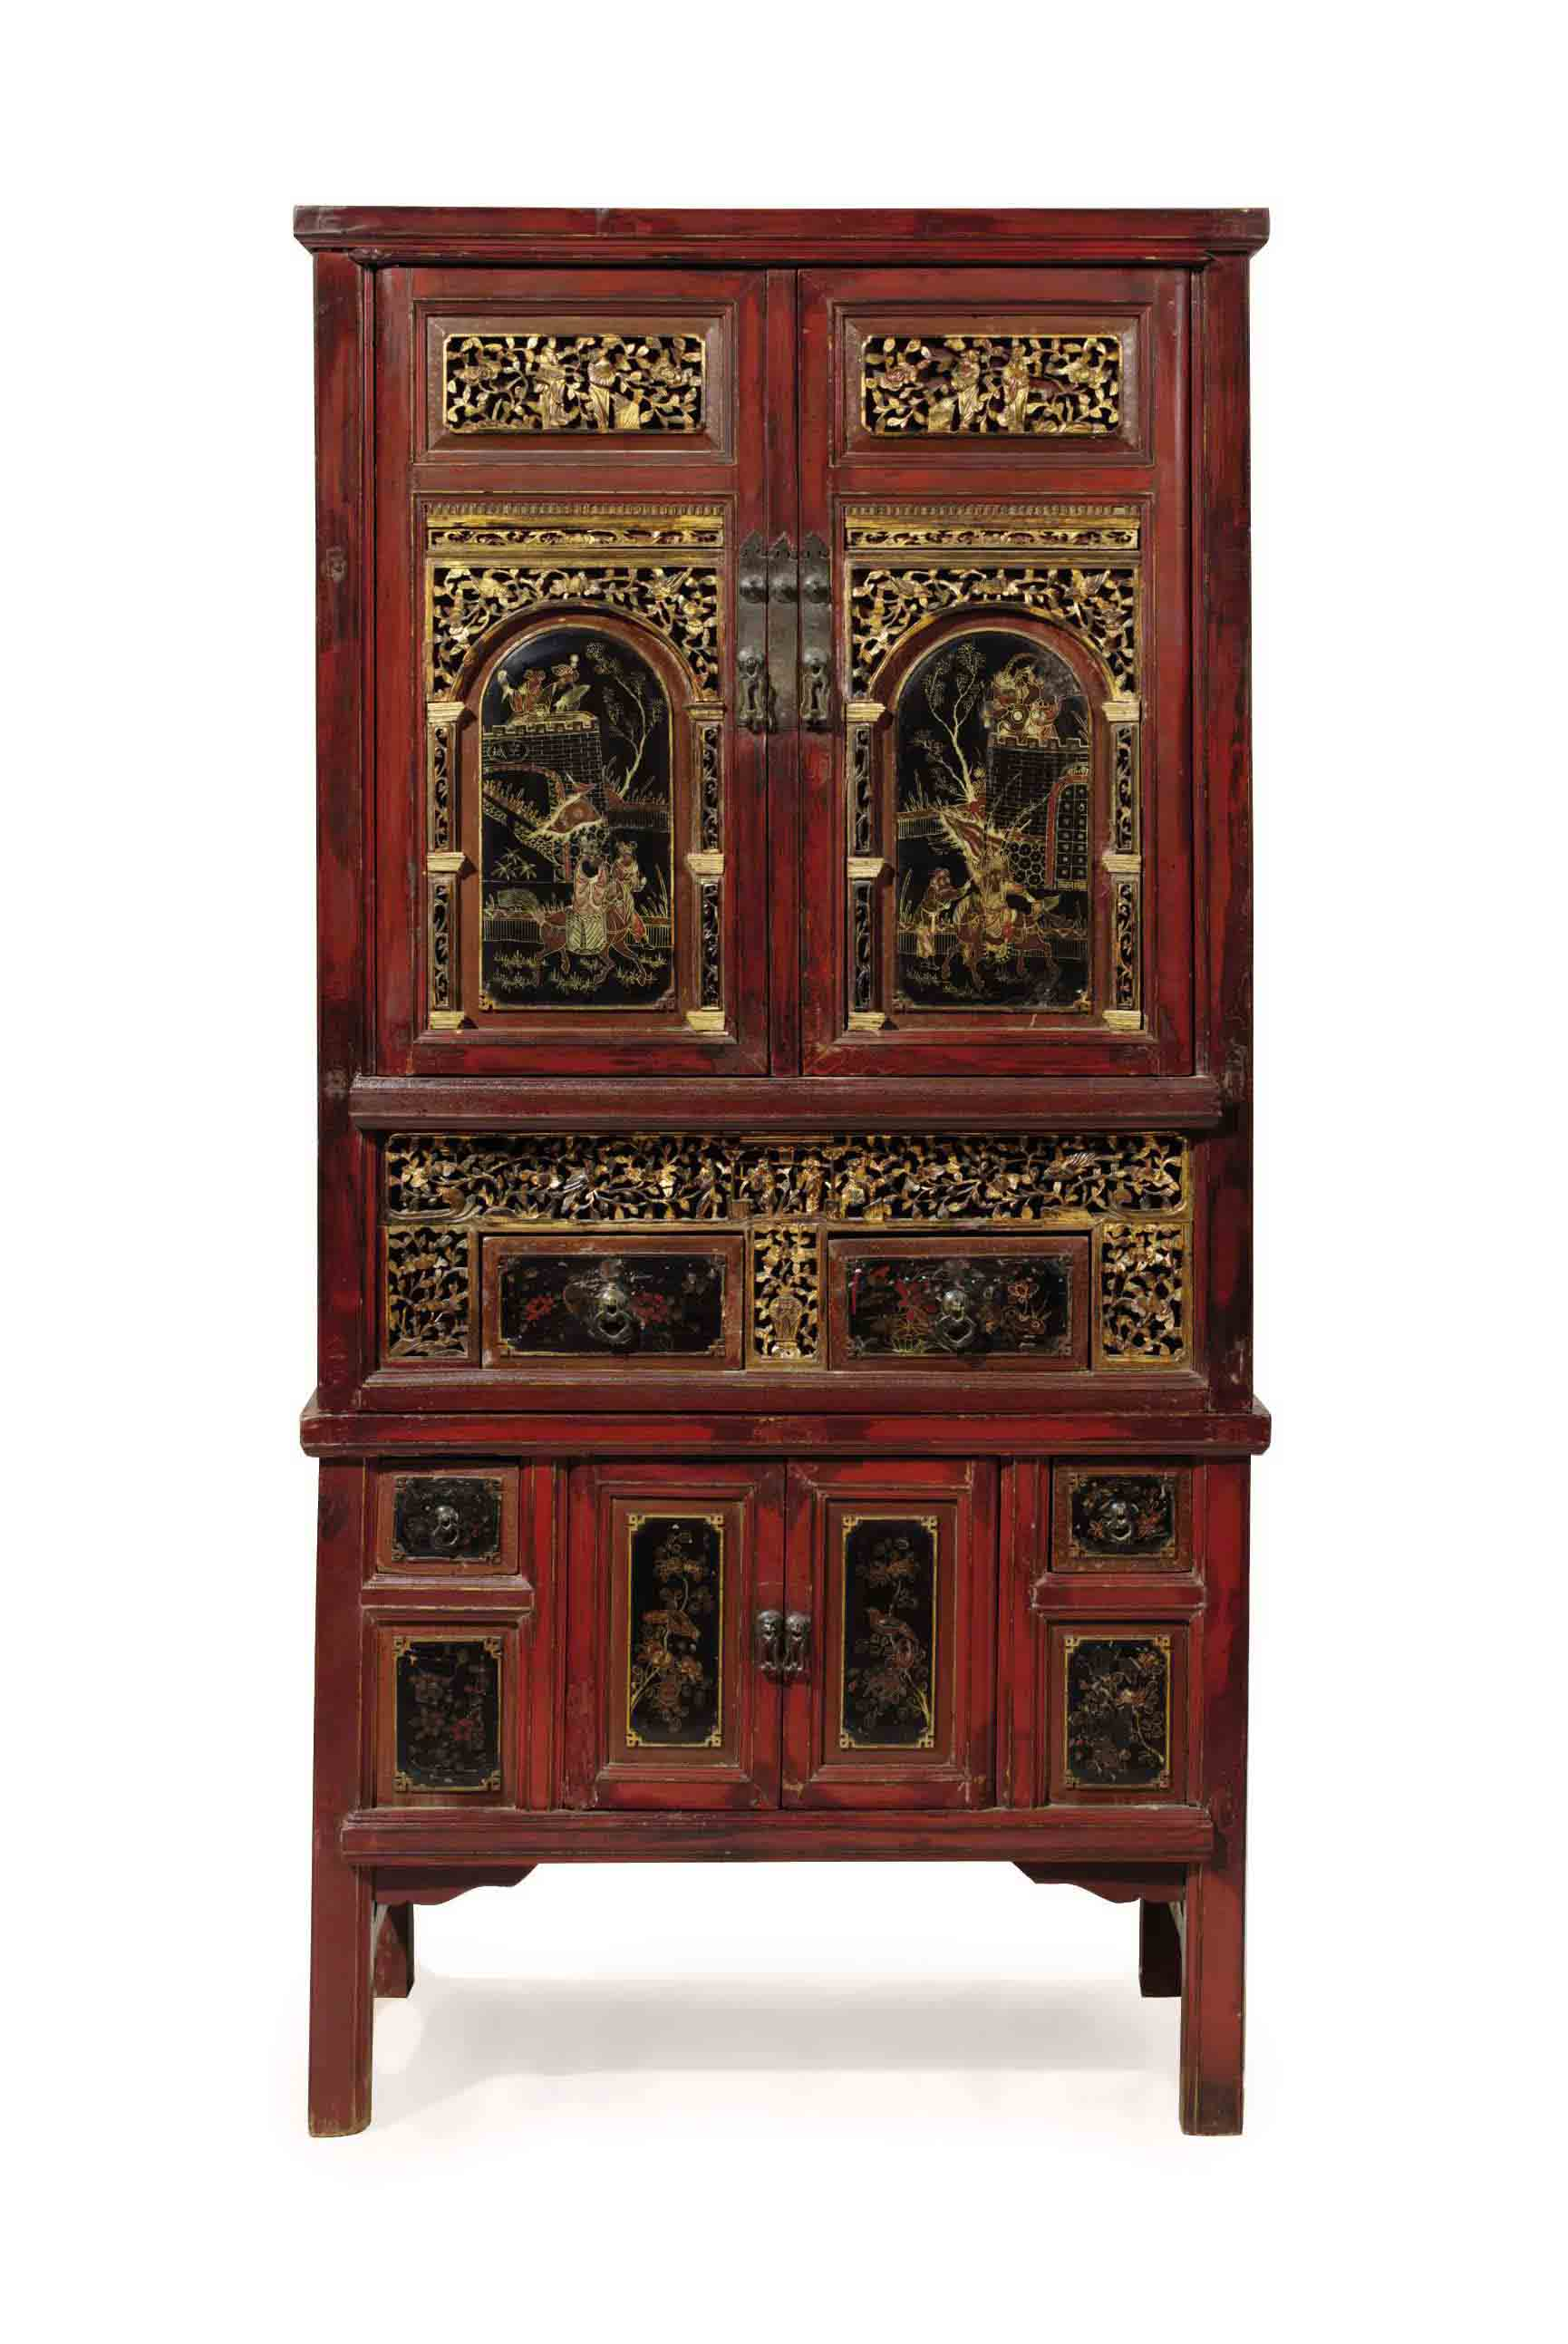 A CHINESE RED, POLYCHROME-JAPA